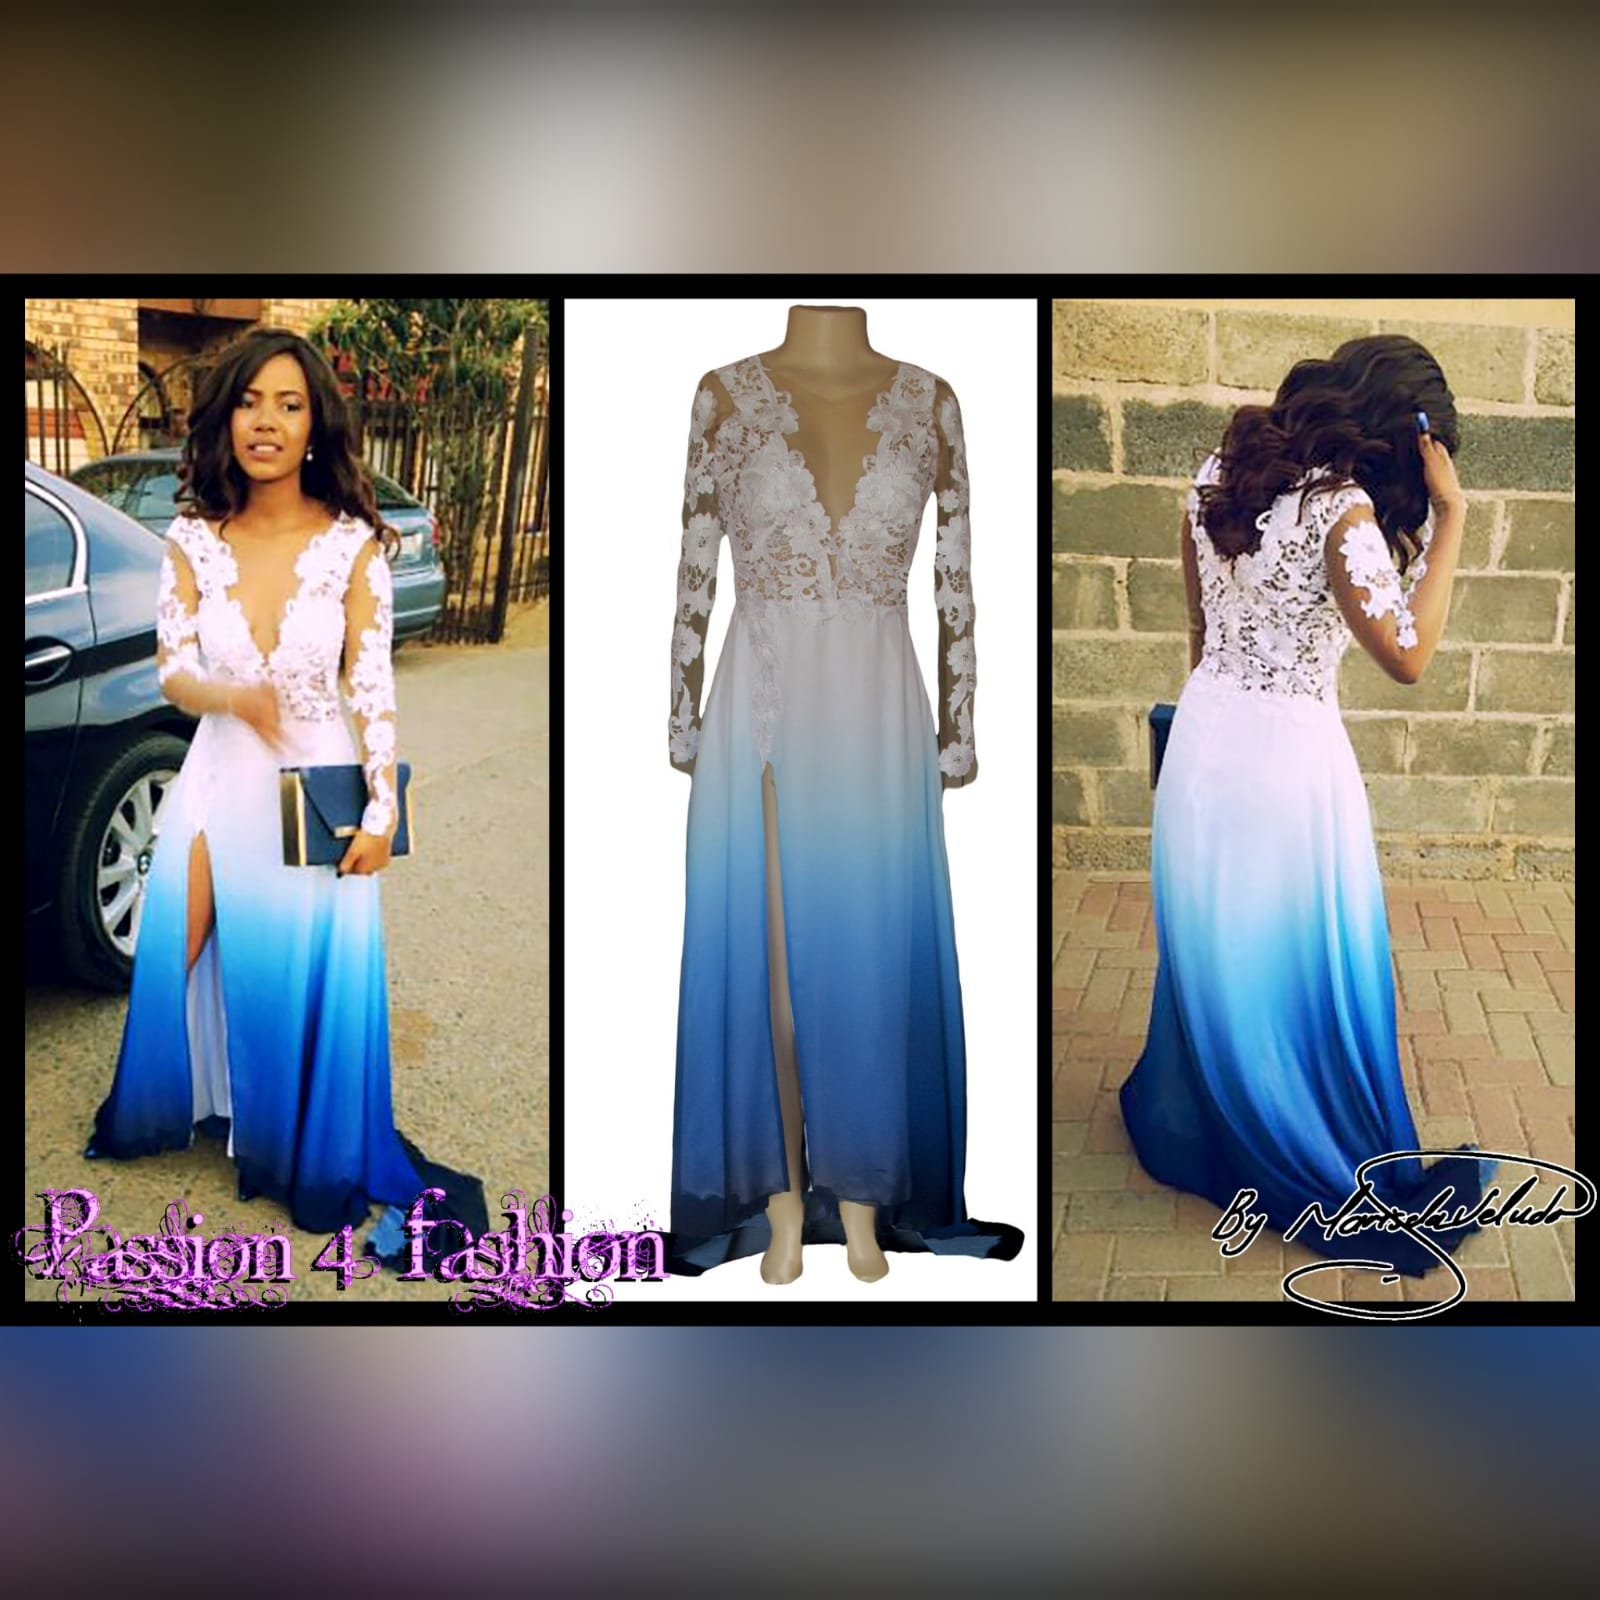 Gorgeous blue and white ombre flowy ceremony dress 3 a gorgeous blue and white ombre flowy ceremony dress created for a prom night. With a classy white bodice with elegant illusion lace sleeves. With a slit and a train